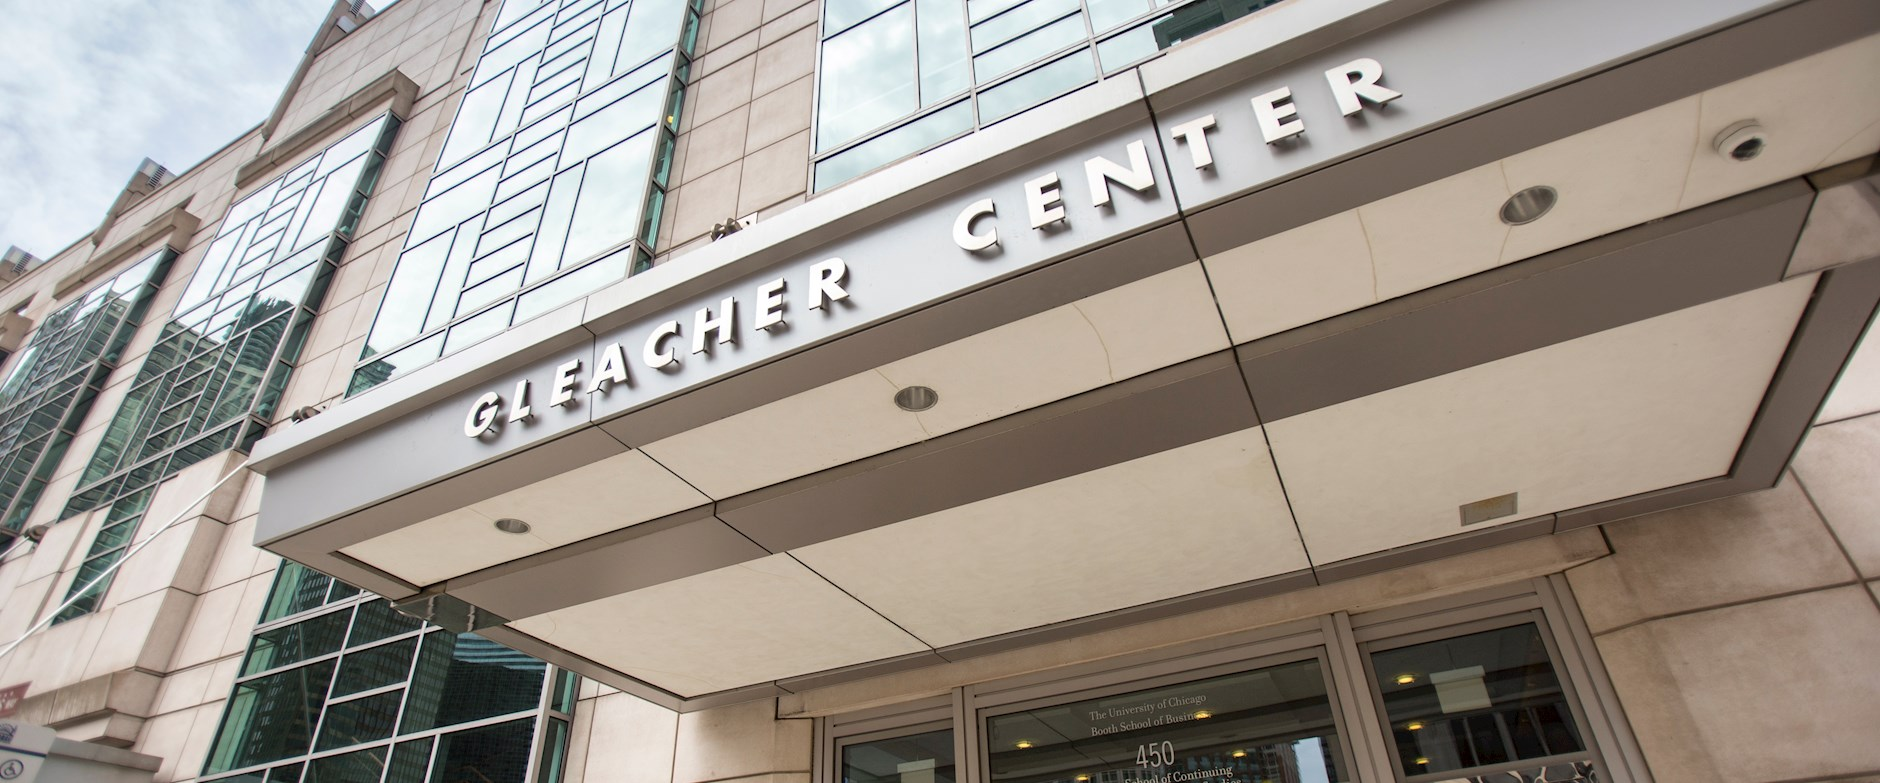 Exterior view of the Chicago Booth Gleacher Center